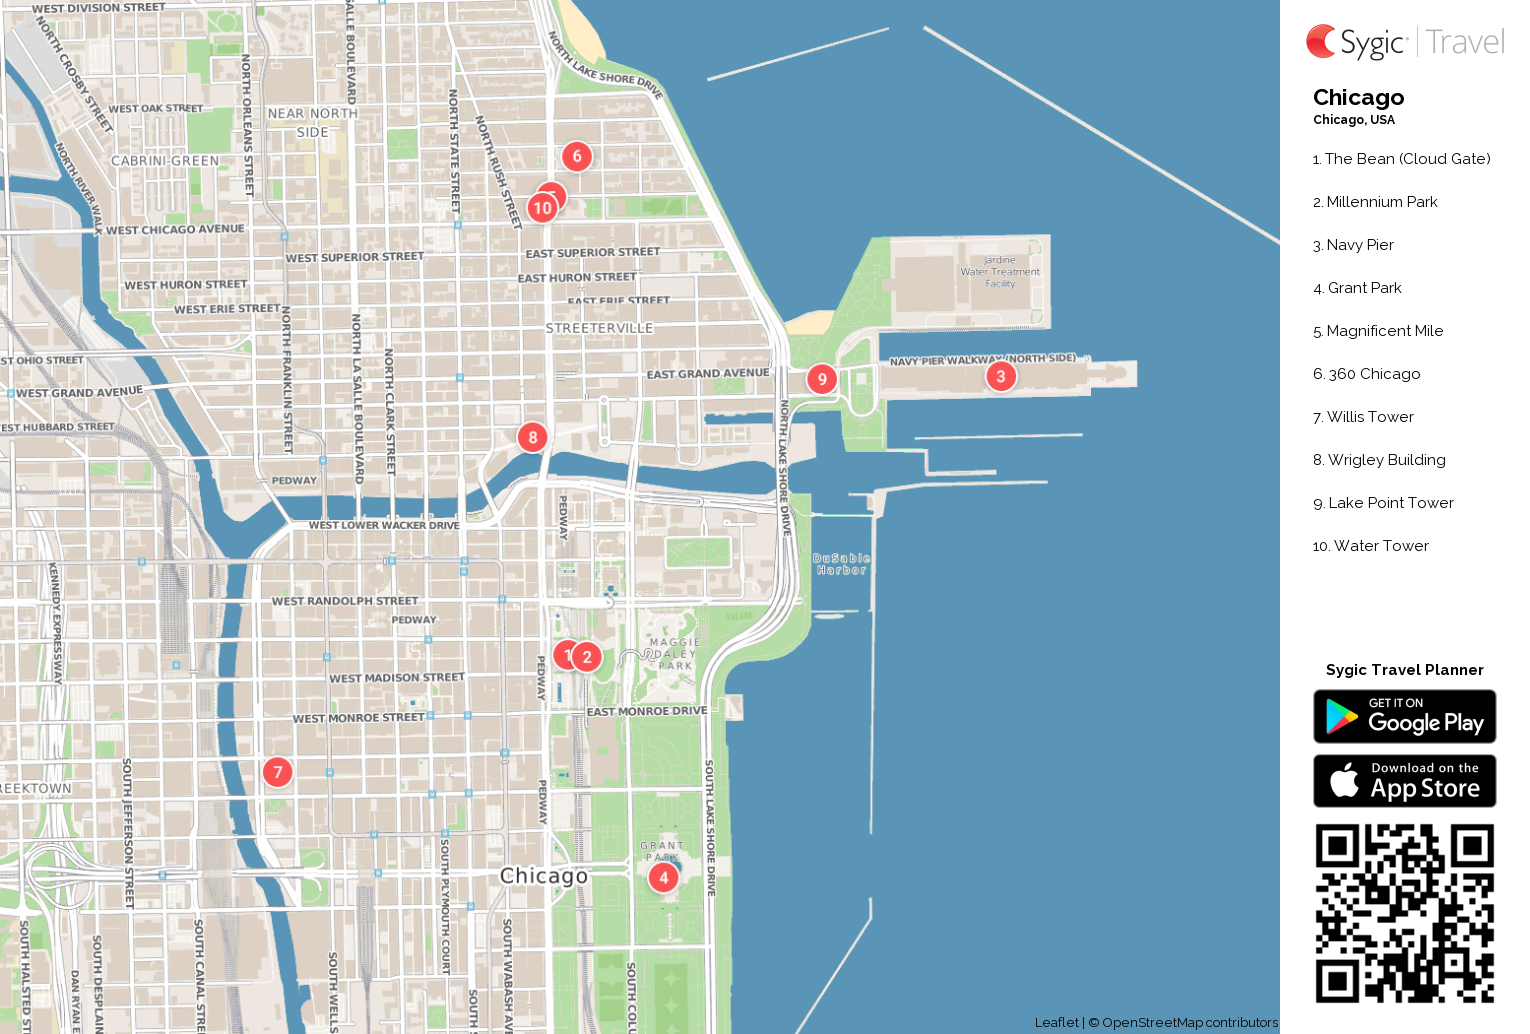 photo relating to Printable Street Map of Downtown Chicago titled Chicago Printable Vacationer Map Sygic Push